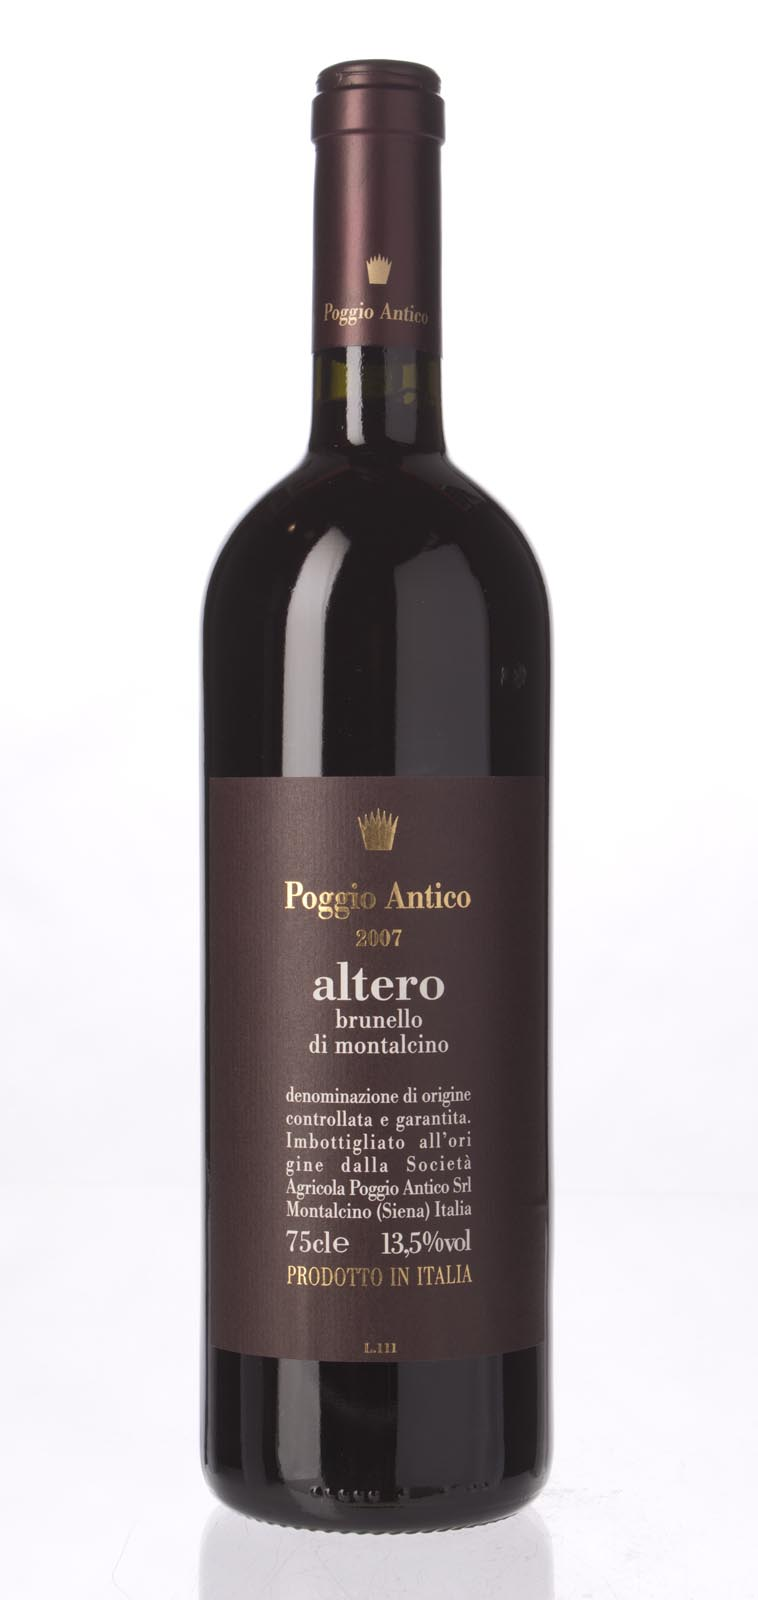 Poggio Antico Brunello di Montalcino Altero 2007, 750ml (JS98) from The BPW - Merchants of rare and fine wines.